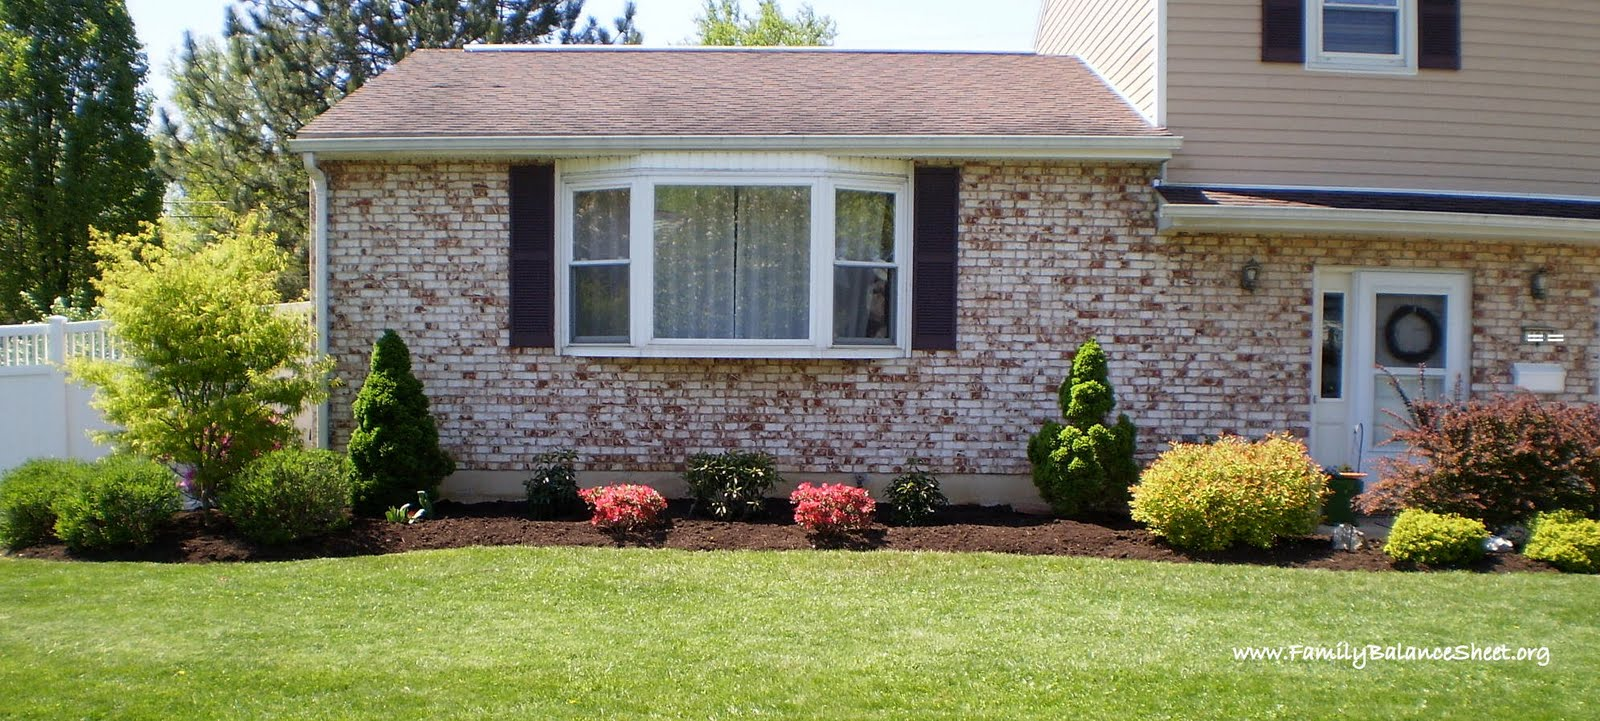 15 tips to help you design your front yard save money too for Simple garden design